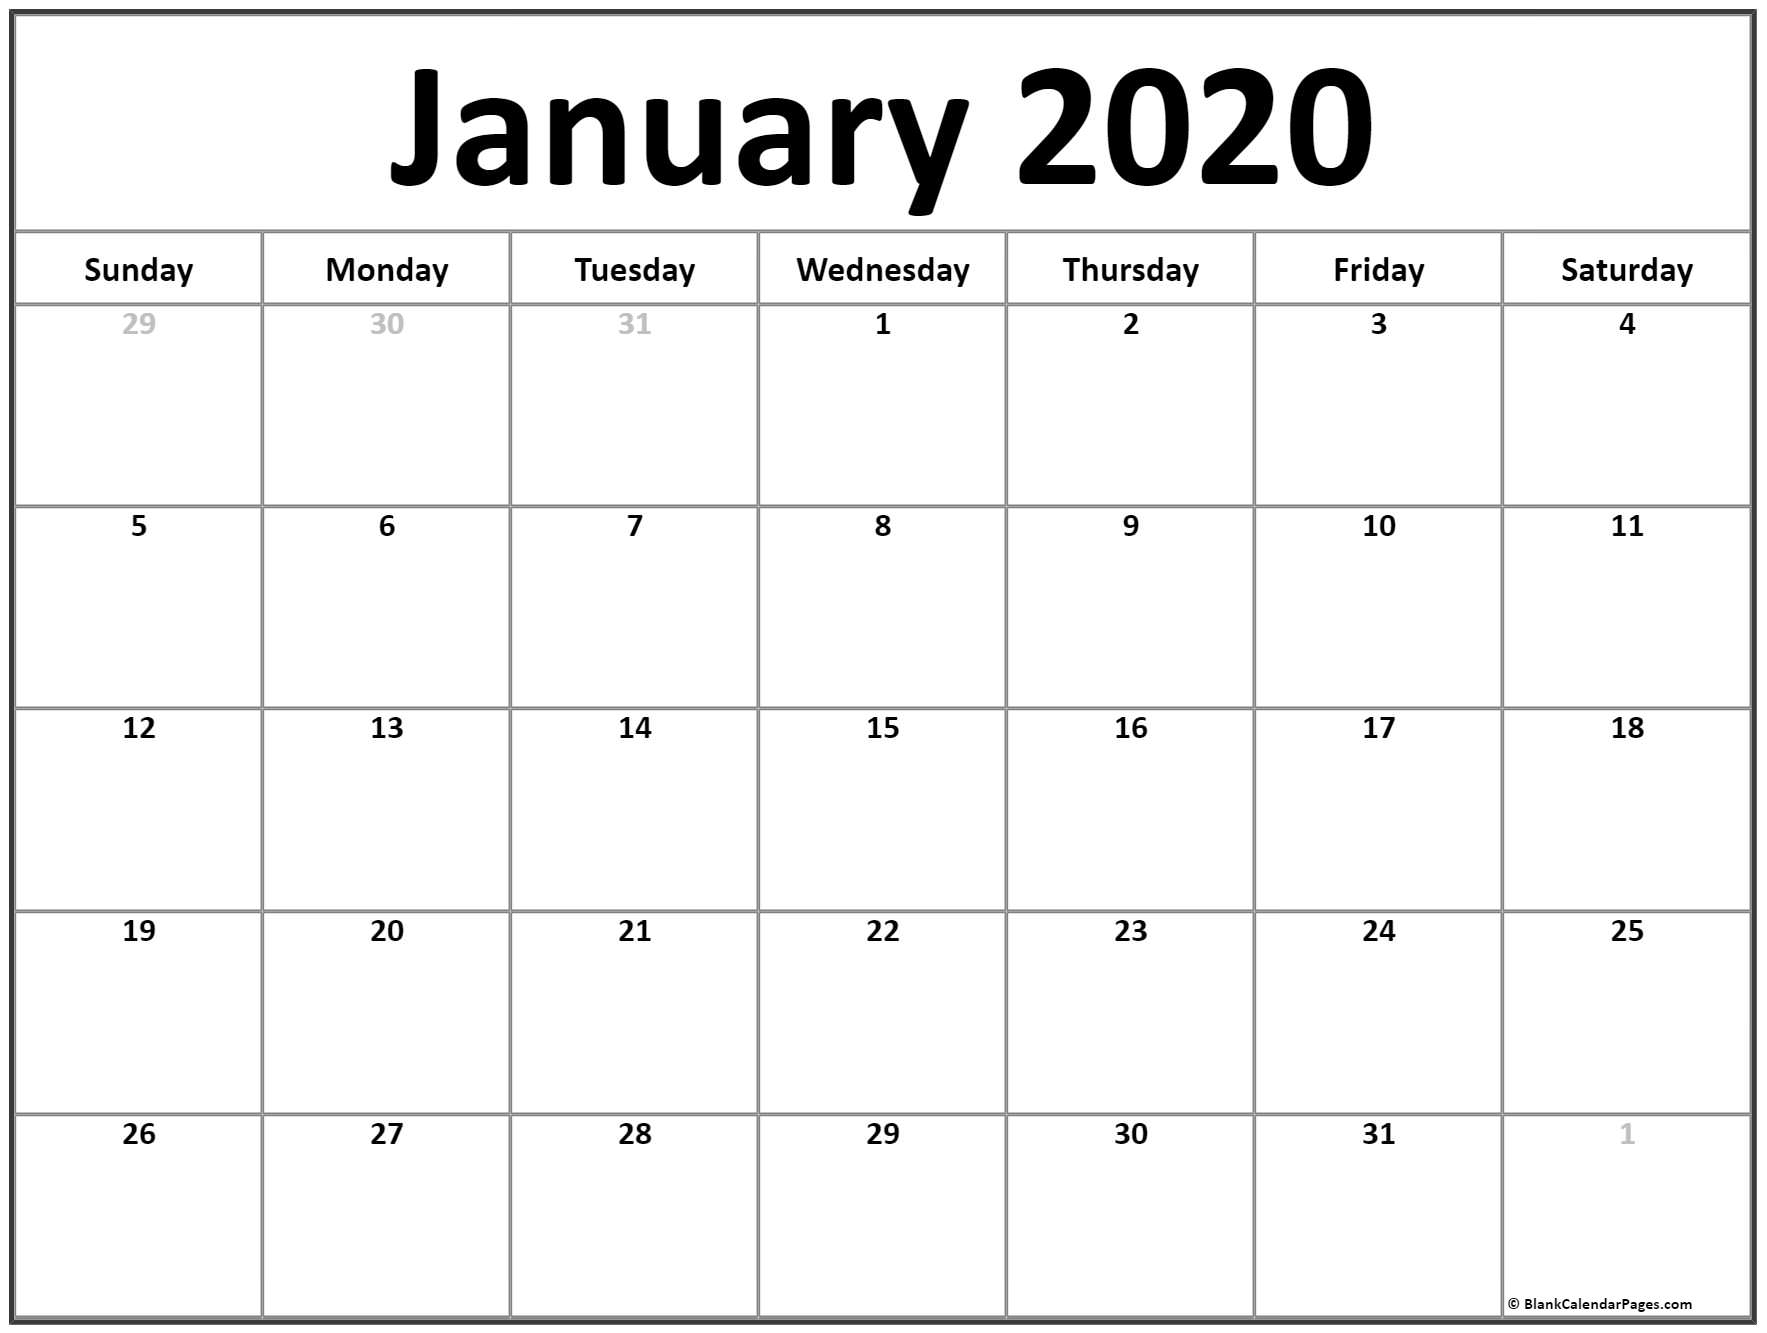 January 2020 Calendar | Free Printable Monthly Calendars regarding Print Free 2020 Calendar Without Downloading Weekly Writing